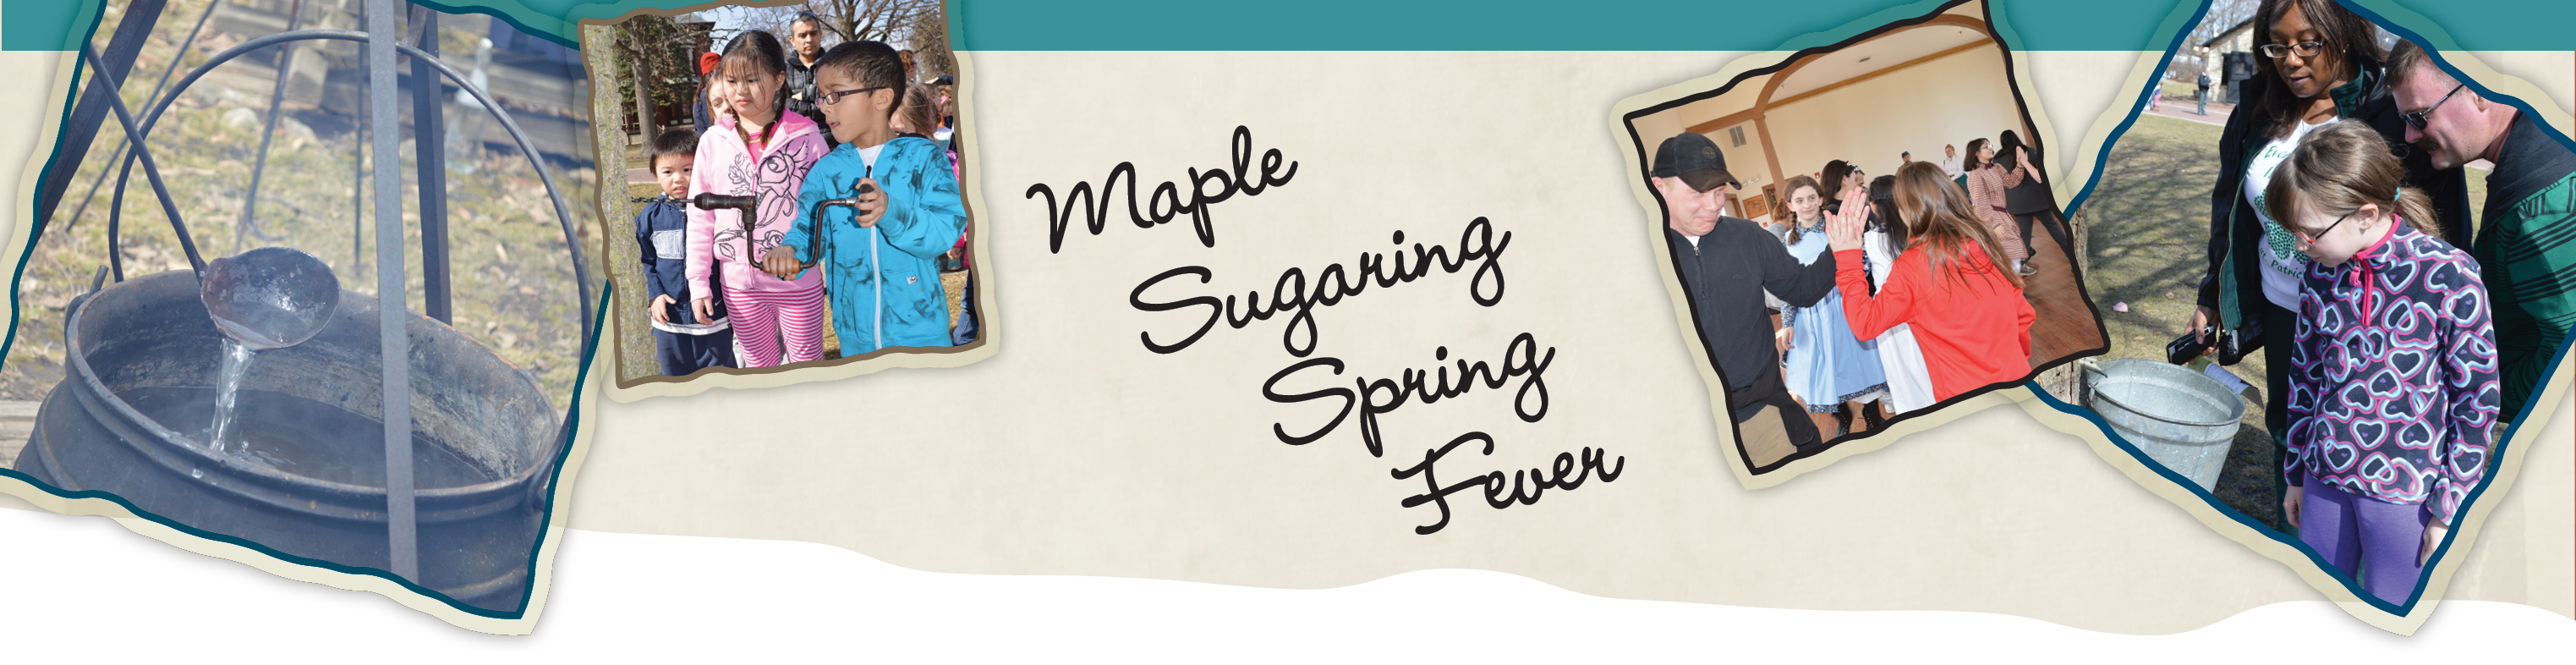 Maplel Sugaring Spring Fever